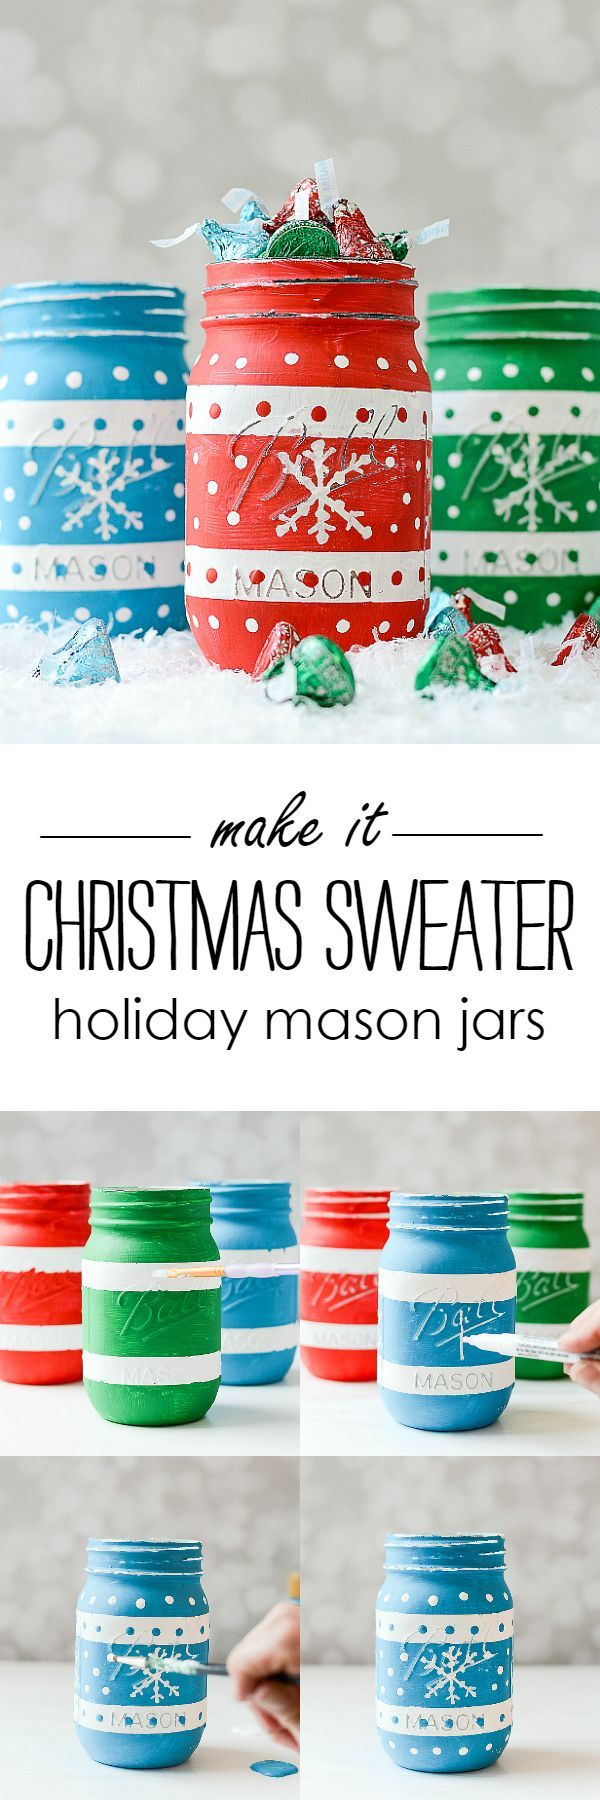 Christmas Sweater Painted Mason Jars with Hershey Kisses Sweater Foils @It All Started With Paint blog http://www.itallstartedwithpaint.com #ad